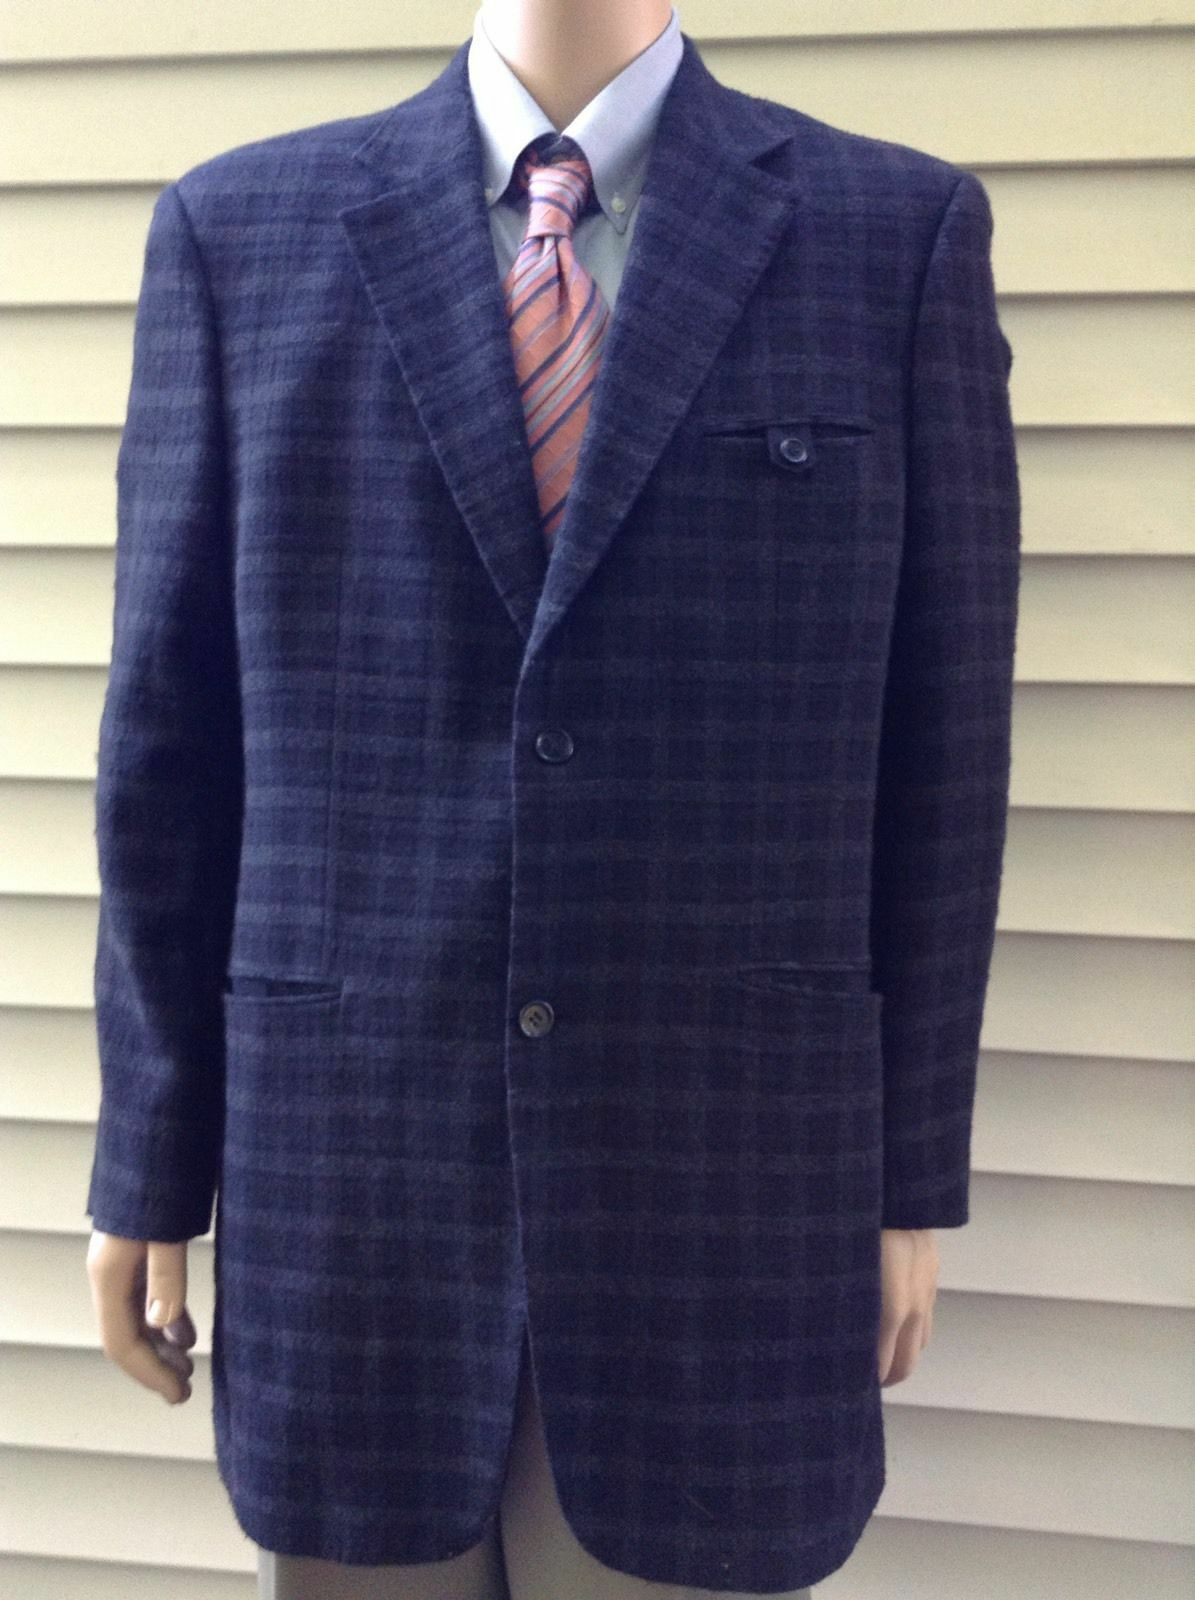 Haupt Navy Blau Plaid Two Button Fully Lined Single Vent Blazer Sportcoat 42L